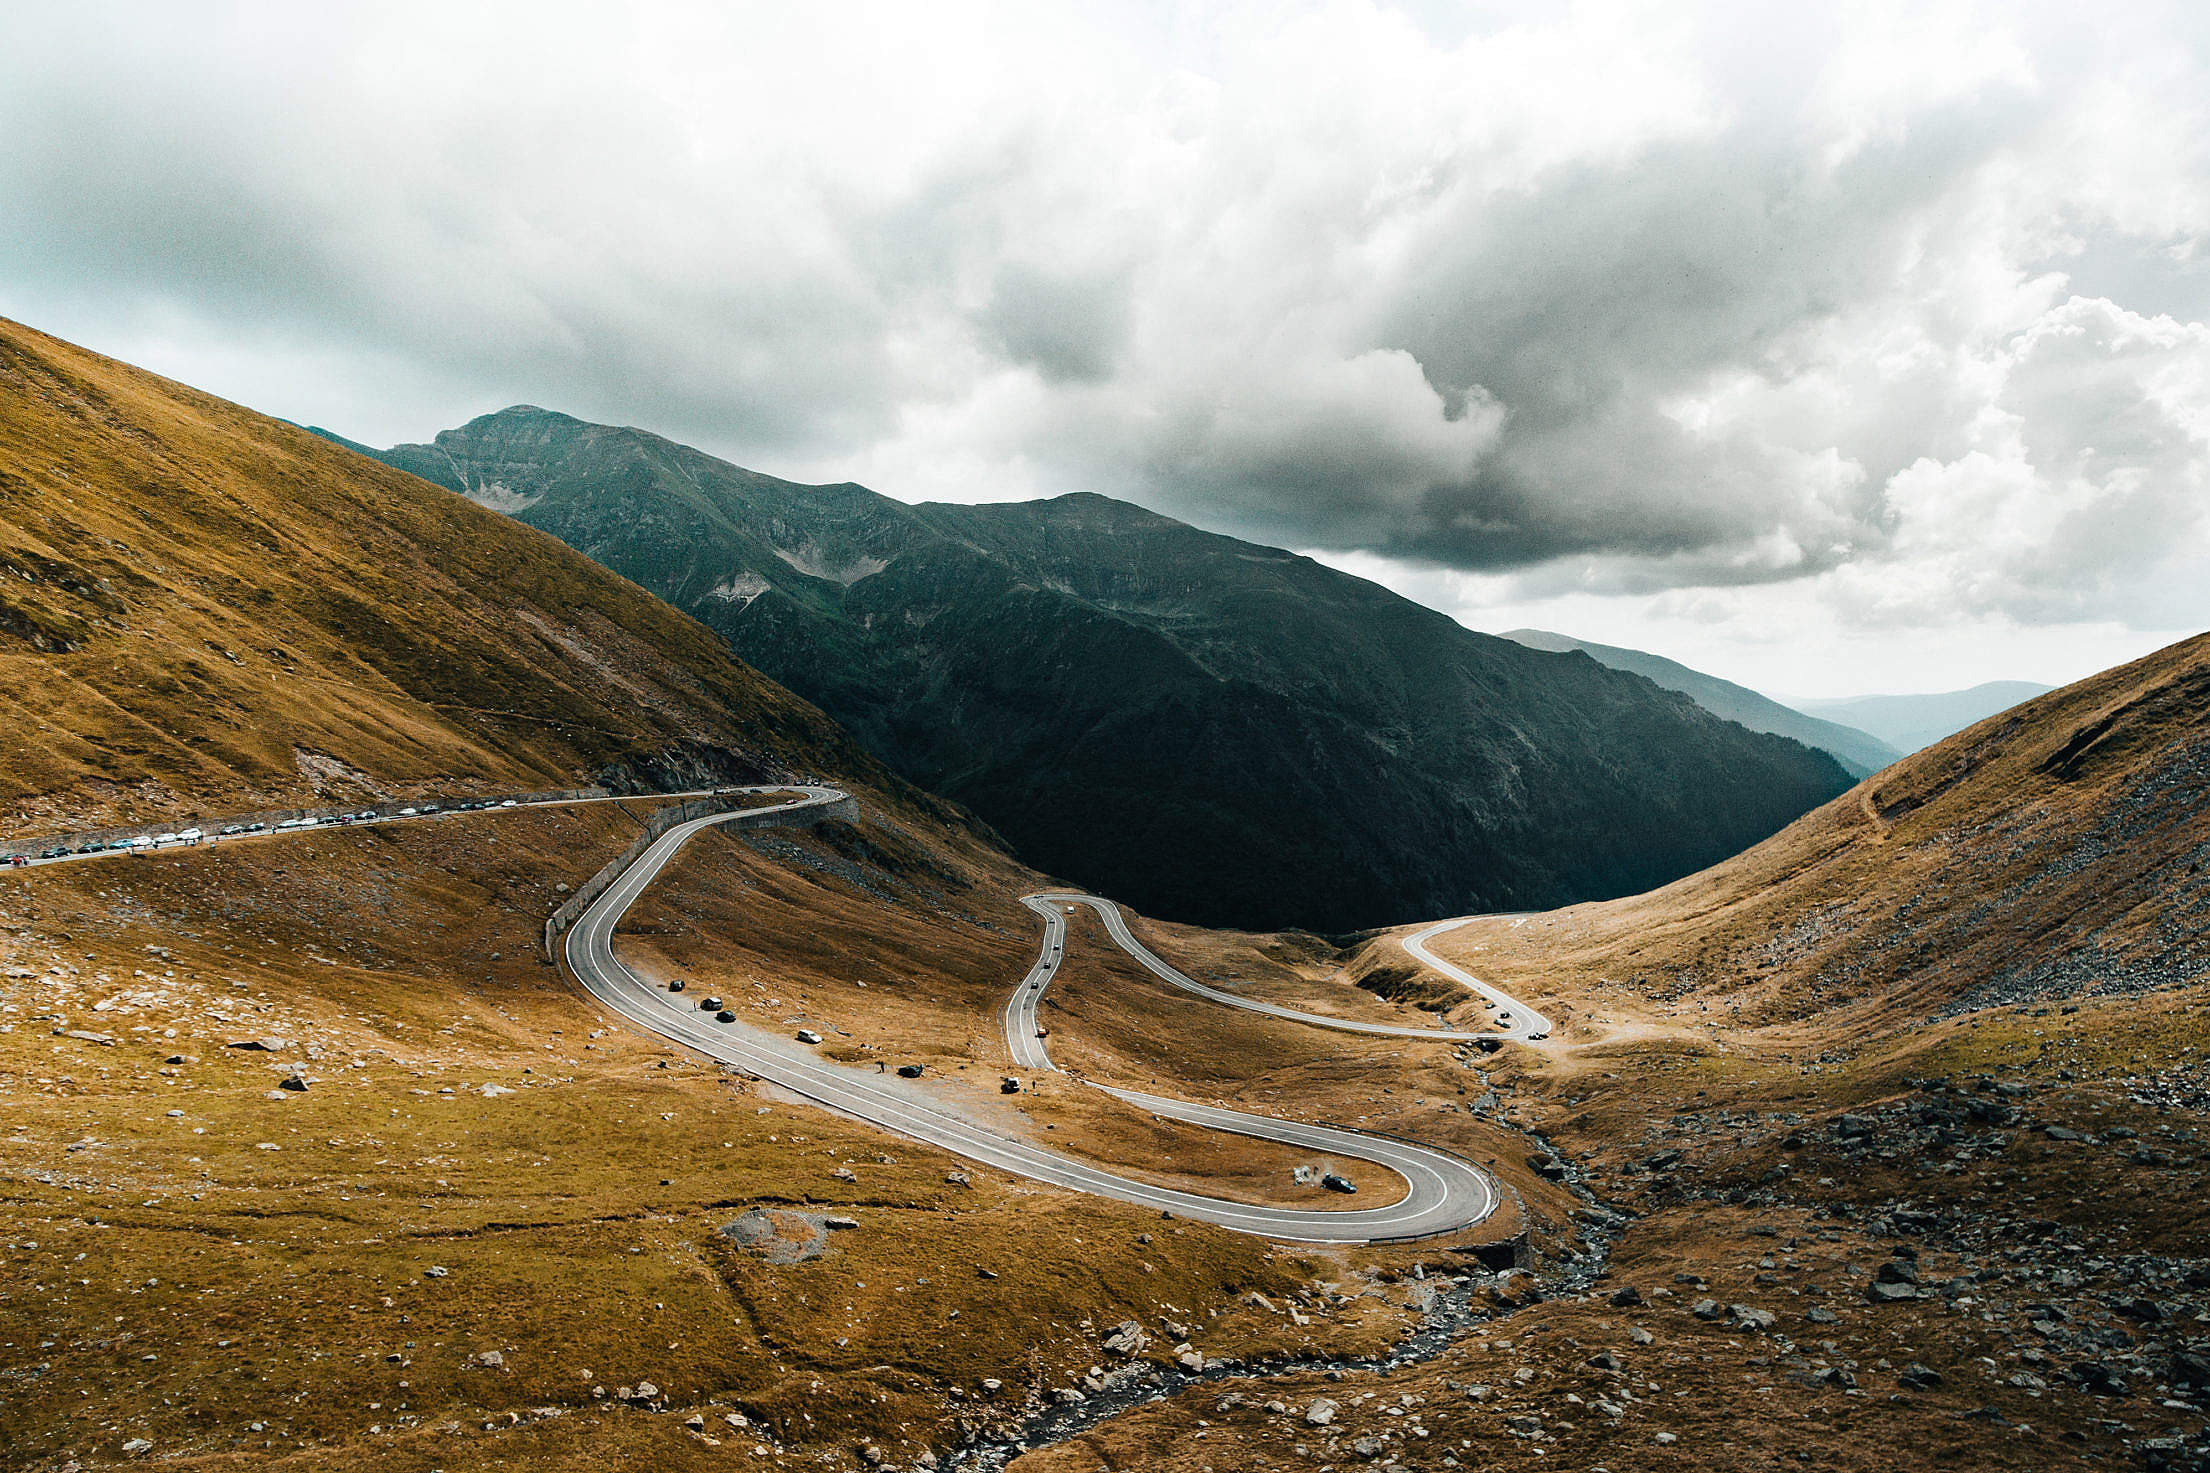 Transfagarasan Road Valley Between the Mountains